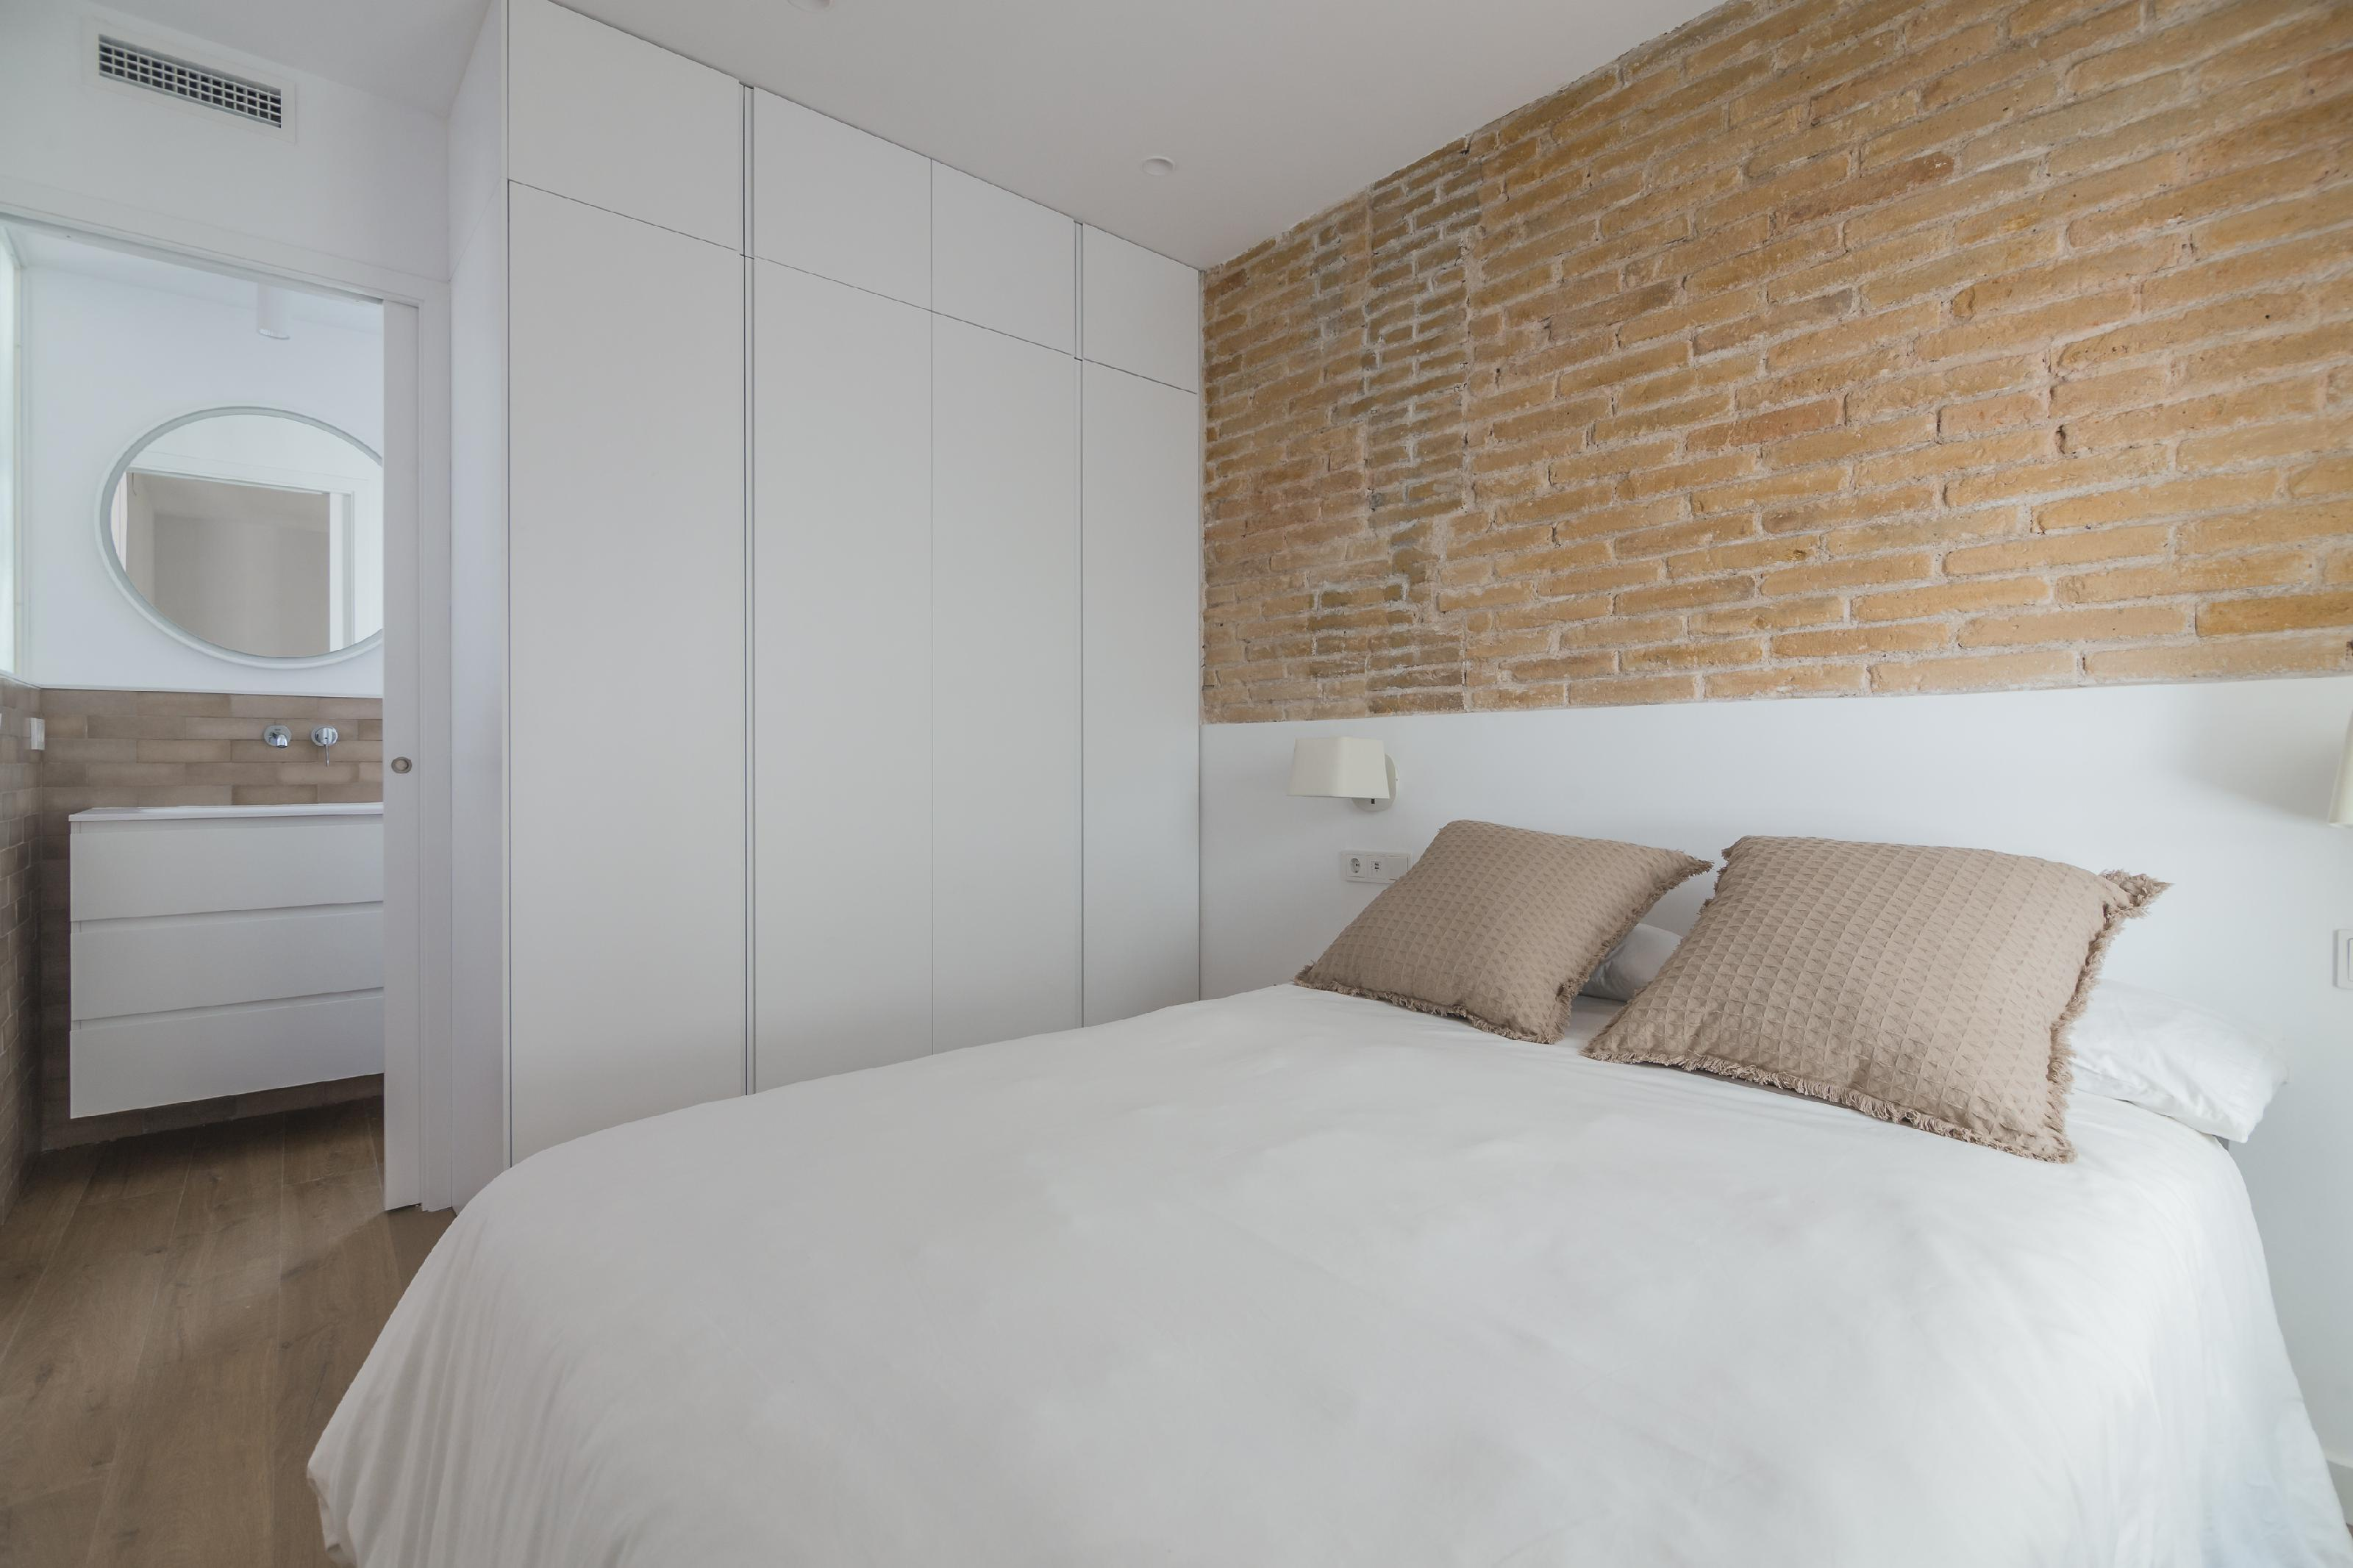 240301 Flat for sale in Gràcia, Camp Grassot and Gràcia Nova 3